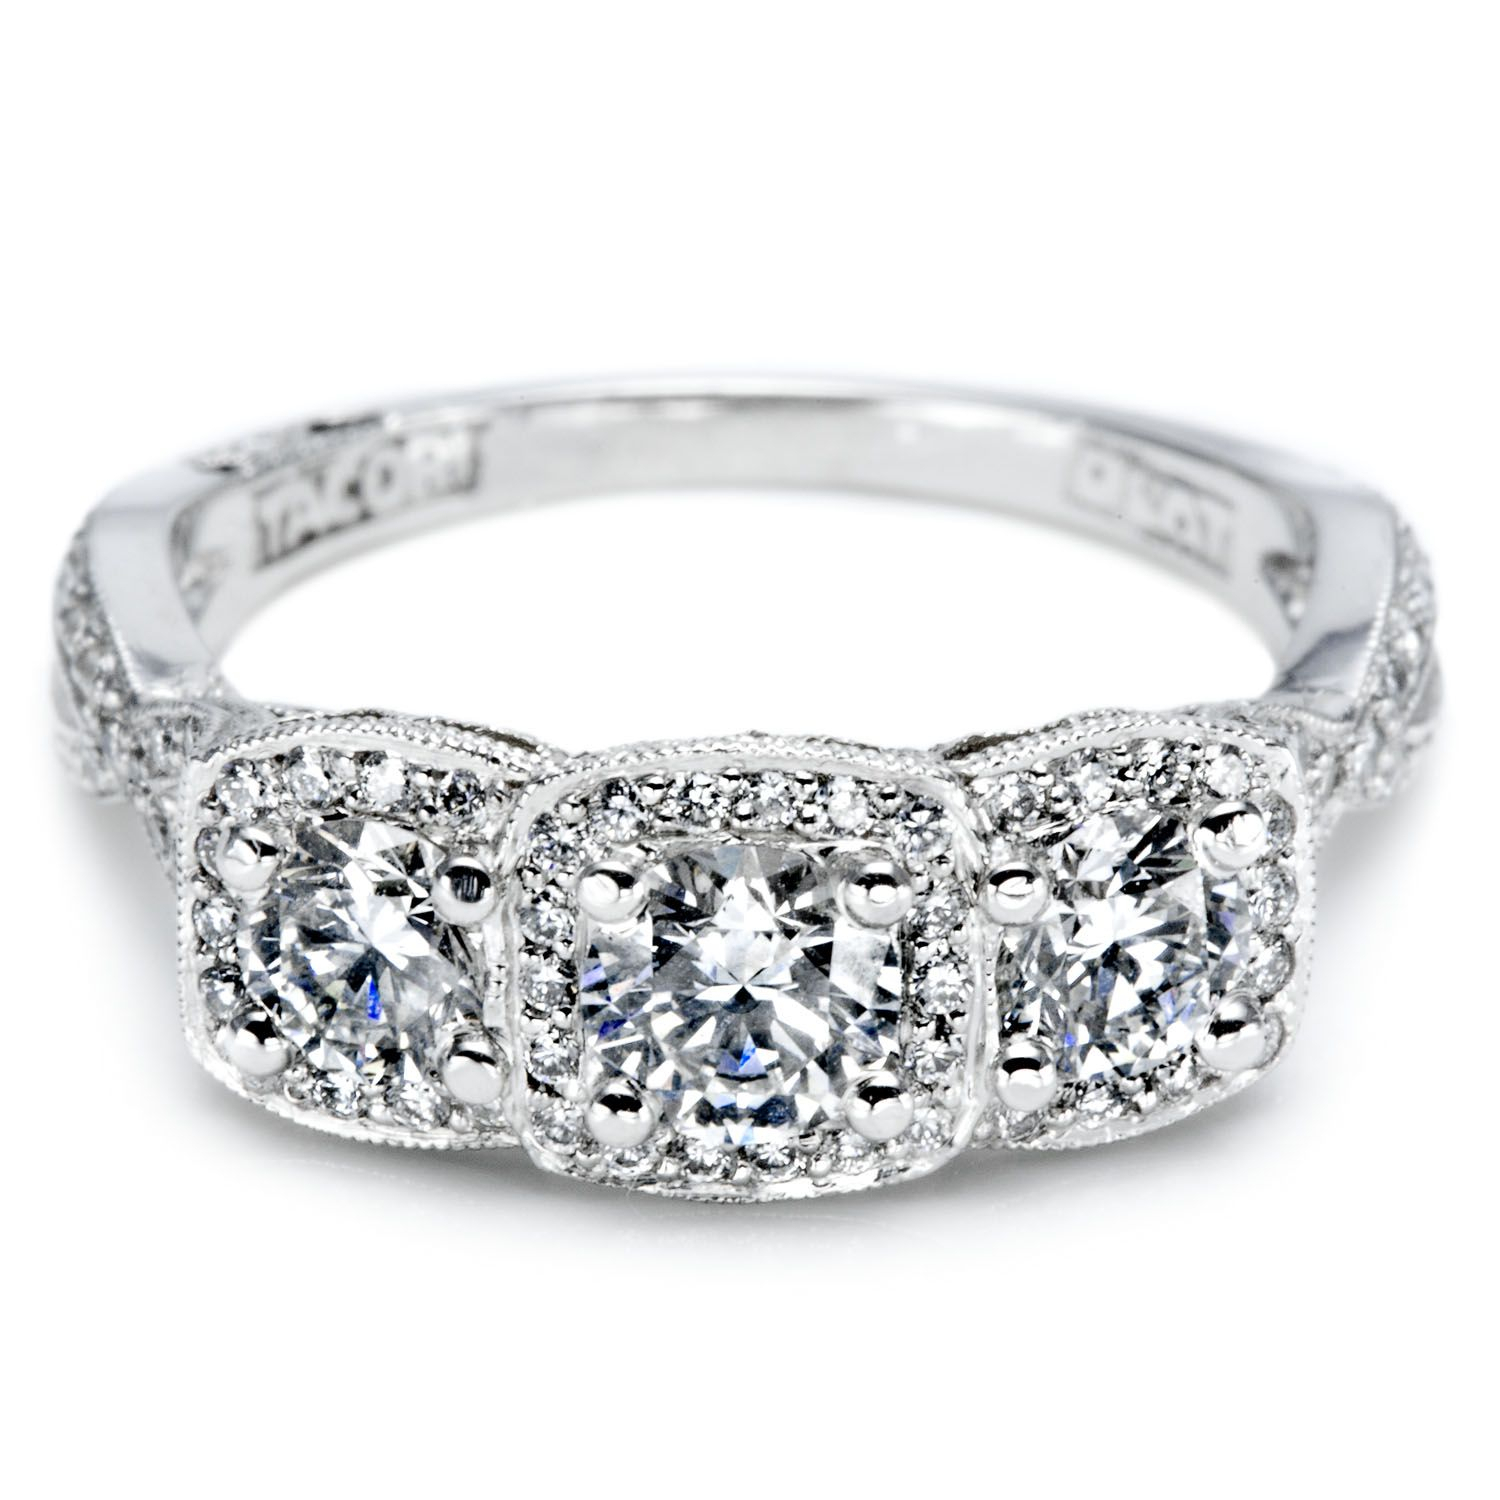 Unique Diamond Anniversary Rings | View Some Examples Of For Best And Newest Diamond Four Row Anniversary Rings In White Gold (View 6 of 25)